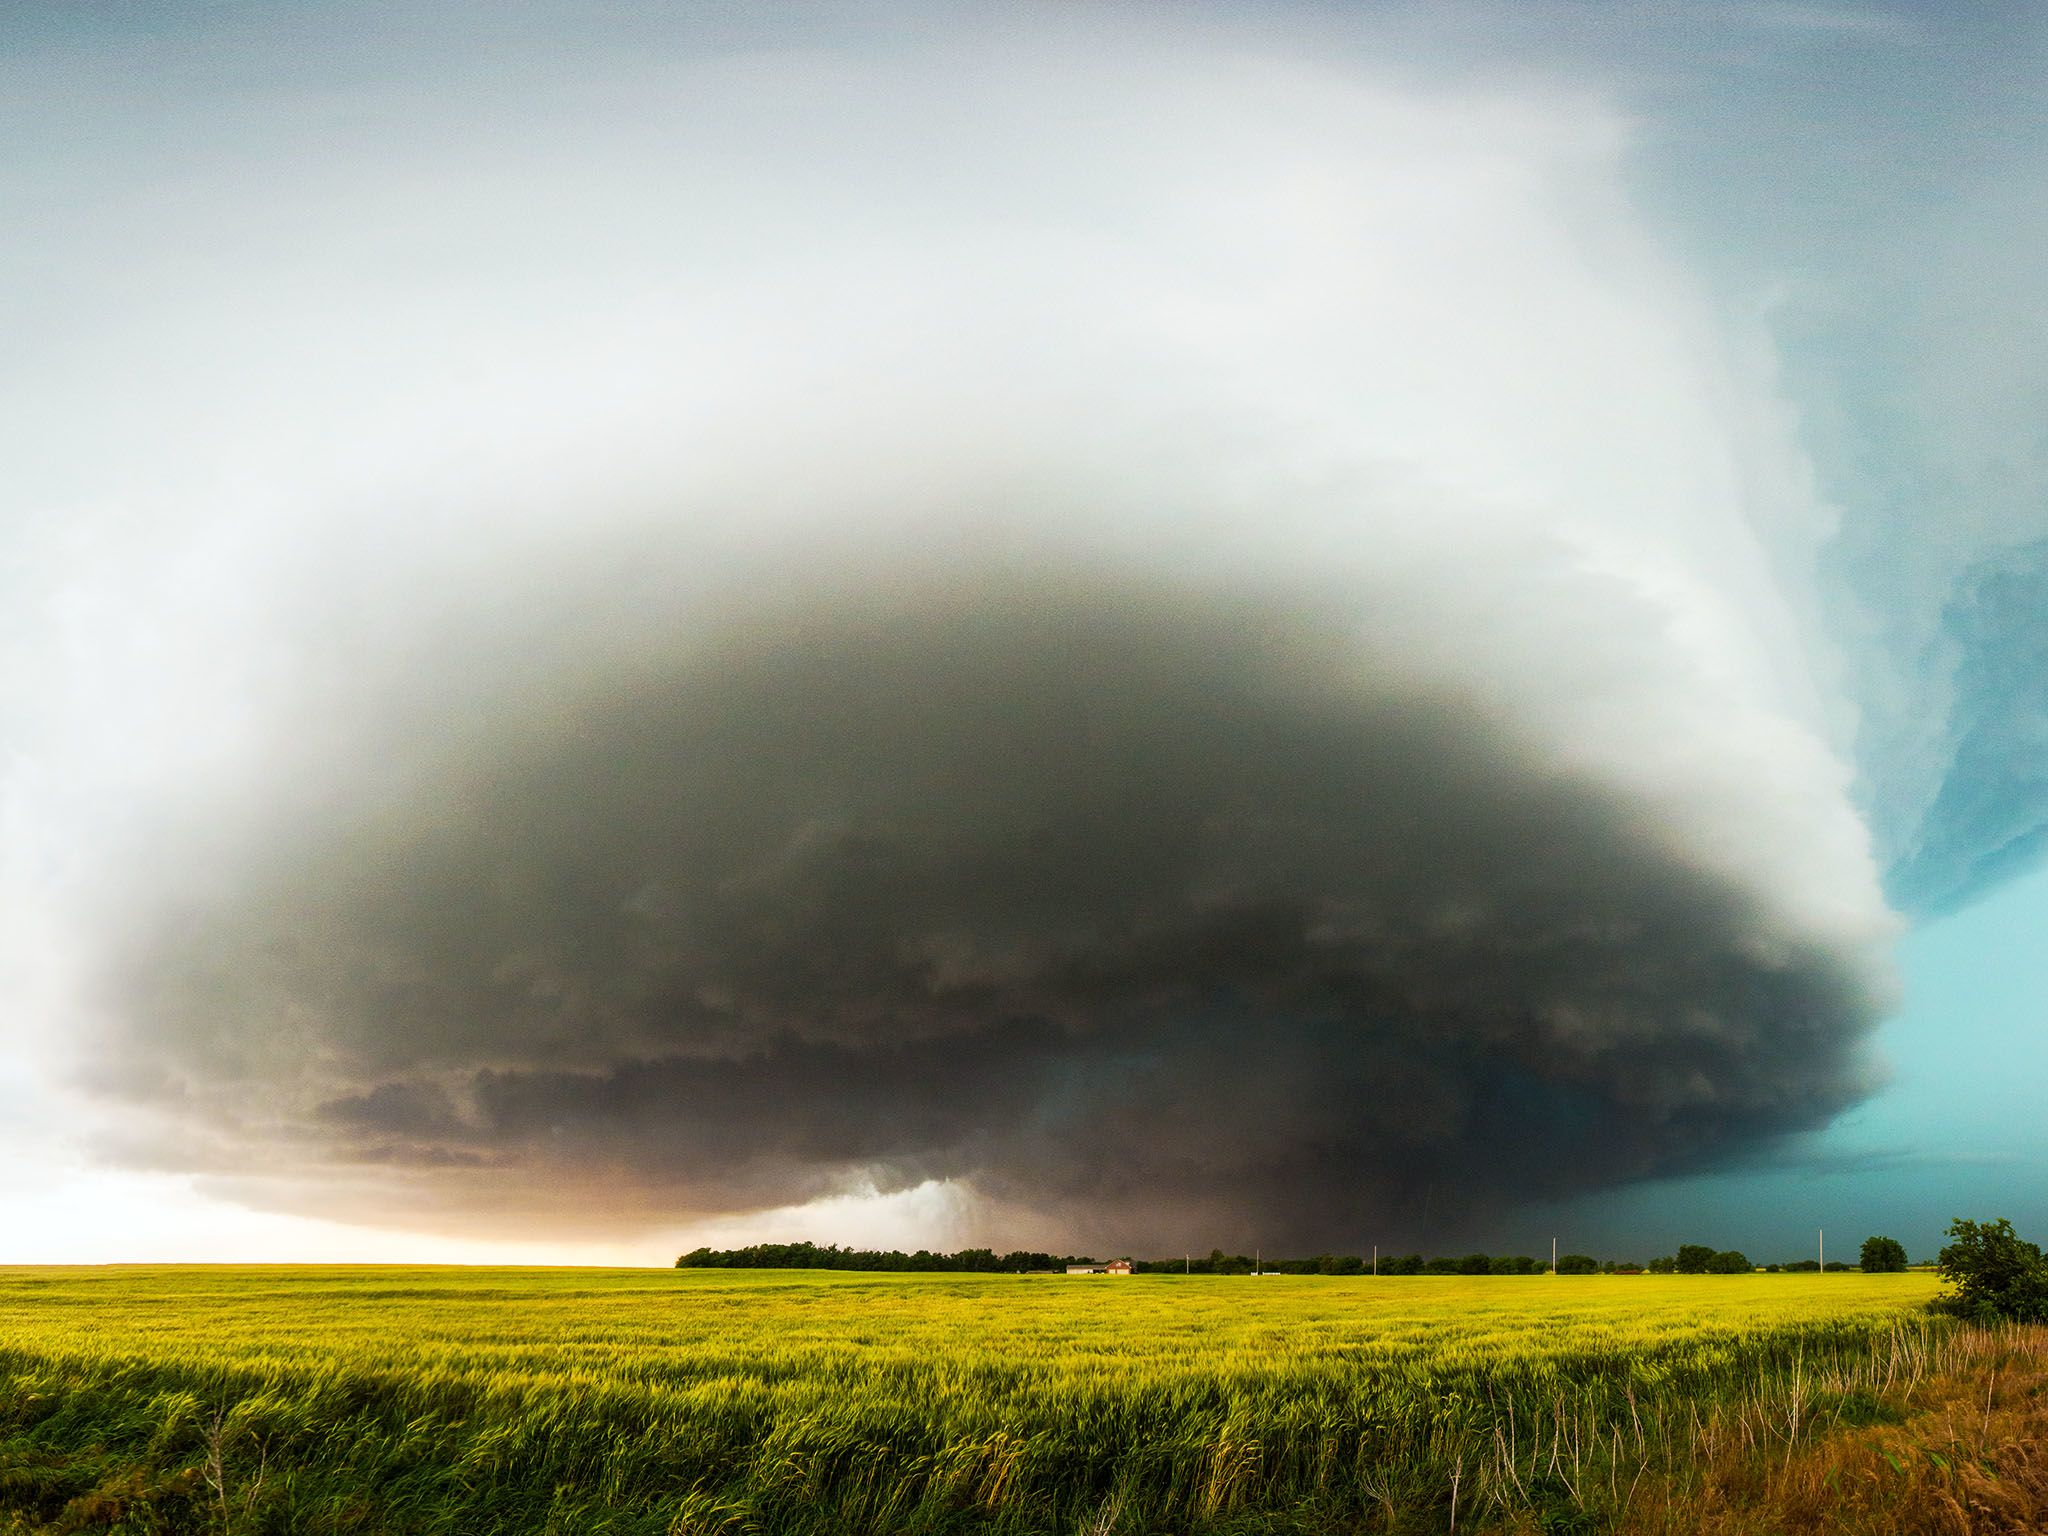 El Reno, Oklahoma.- A giant, dark wallcloud looms near the ground on May 31, 2013 threatening to... [Photo of the day - August 2015]